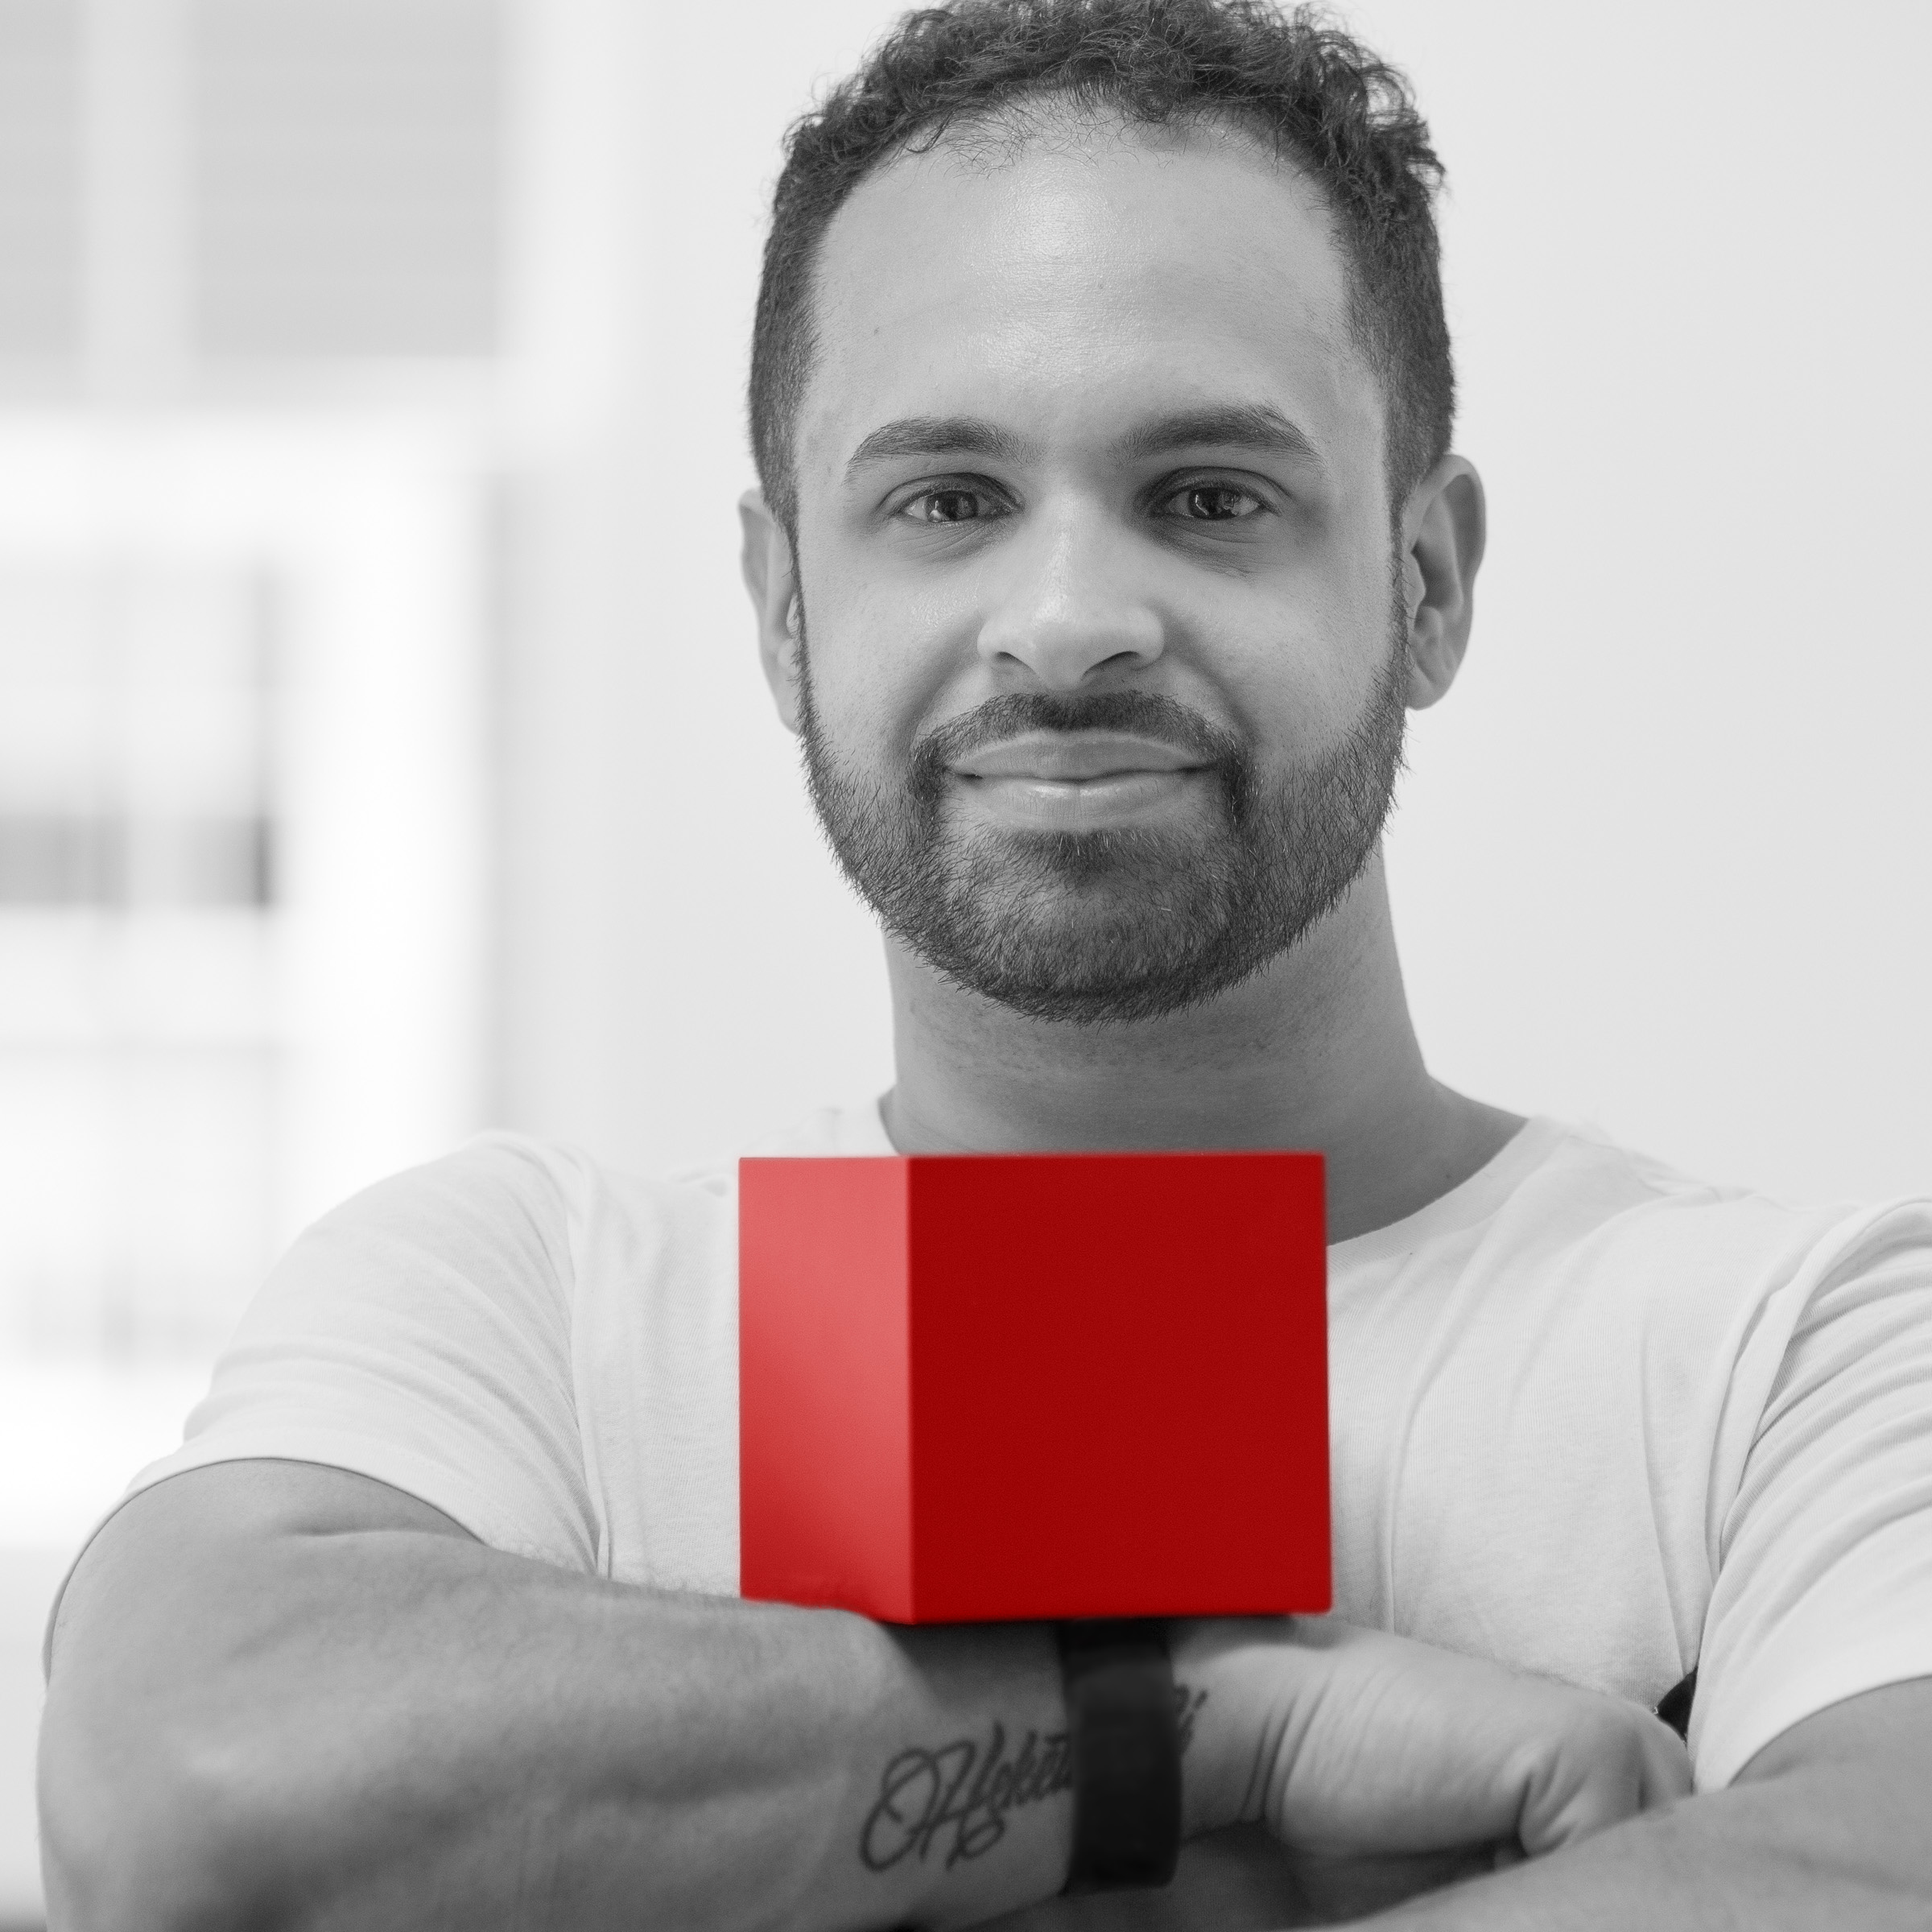 Joel Zayas in black and white with a bright red cube resting on his crossed arms